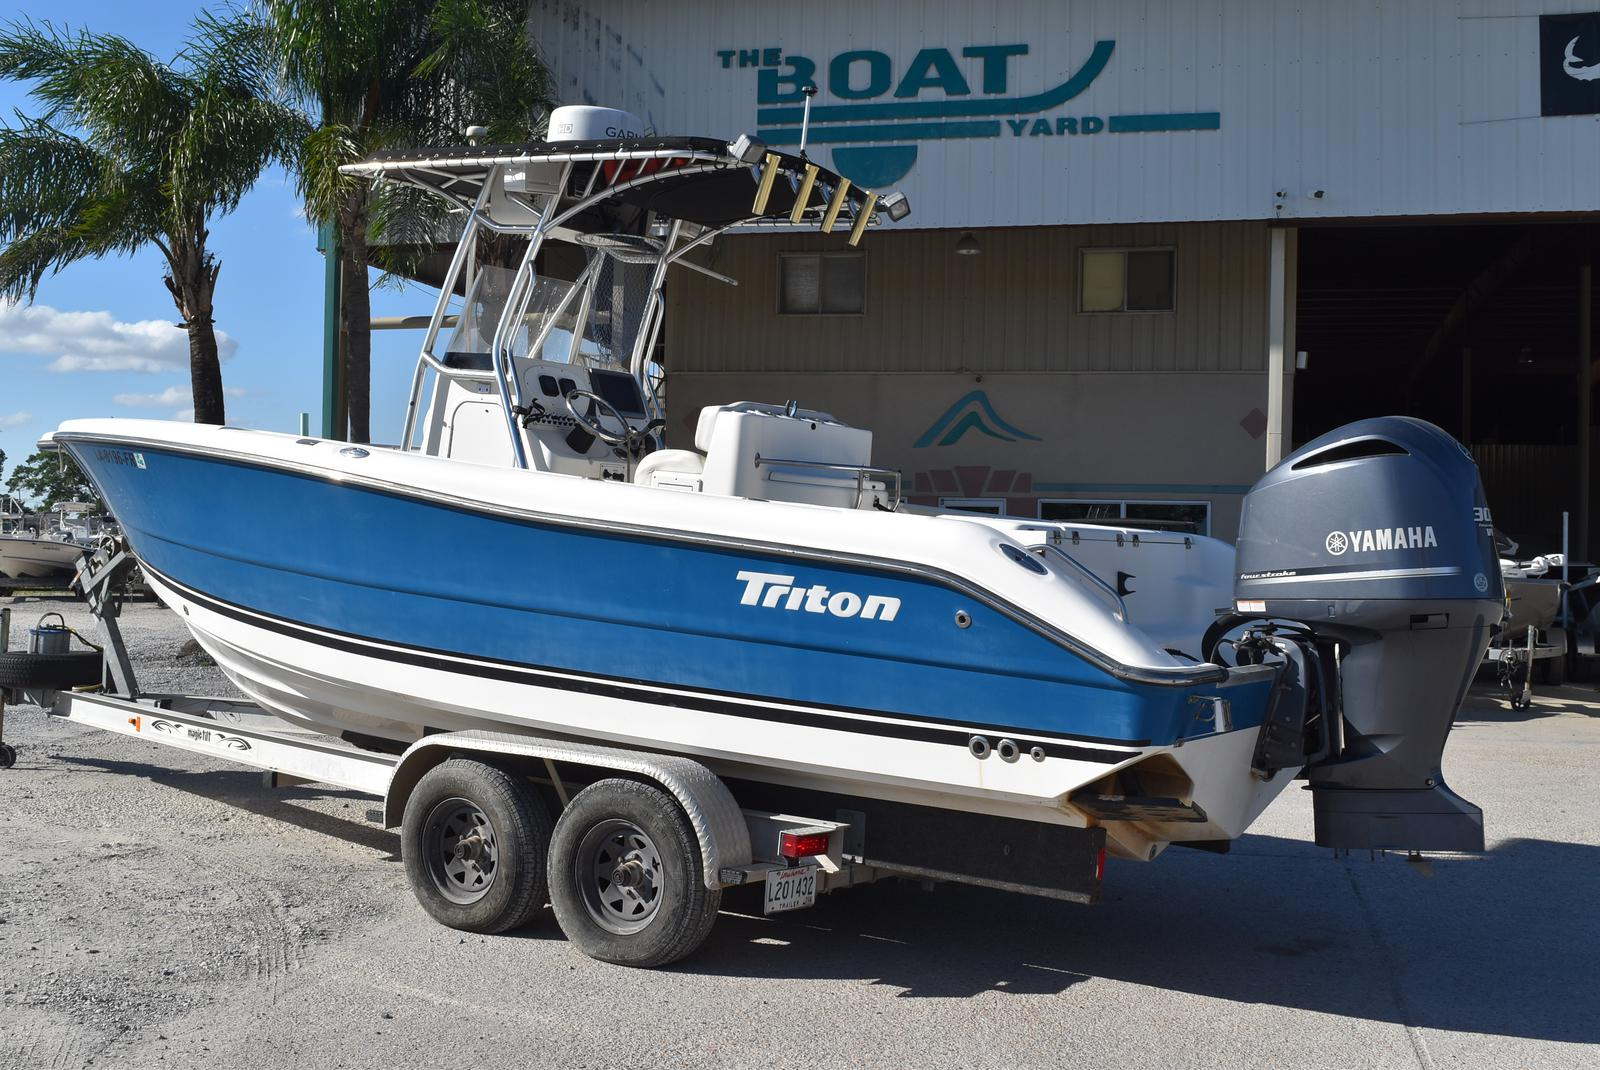 2006 Triton boat for sale, model of the boat is 2486 & Image # 10 of 24